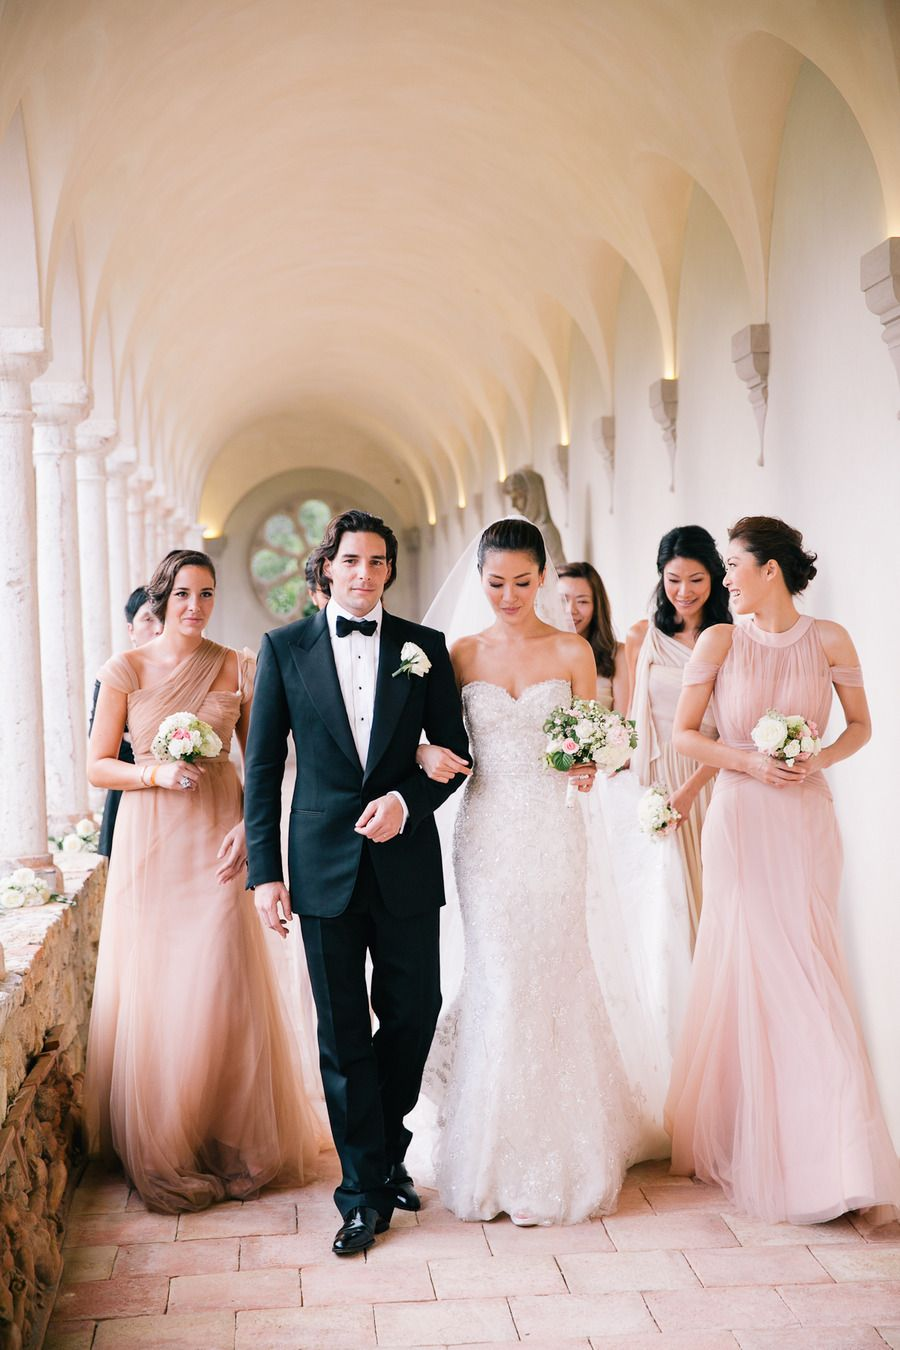 Black and blush wedding dress  South of France Destination Wedding from One and Only Paris